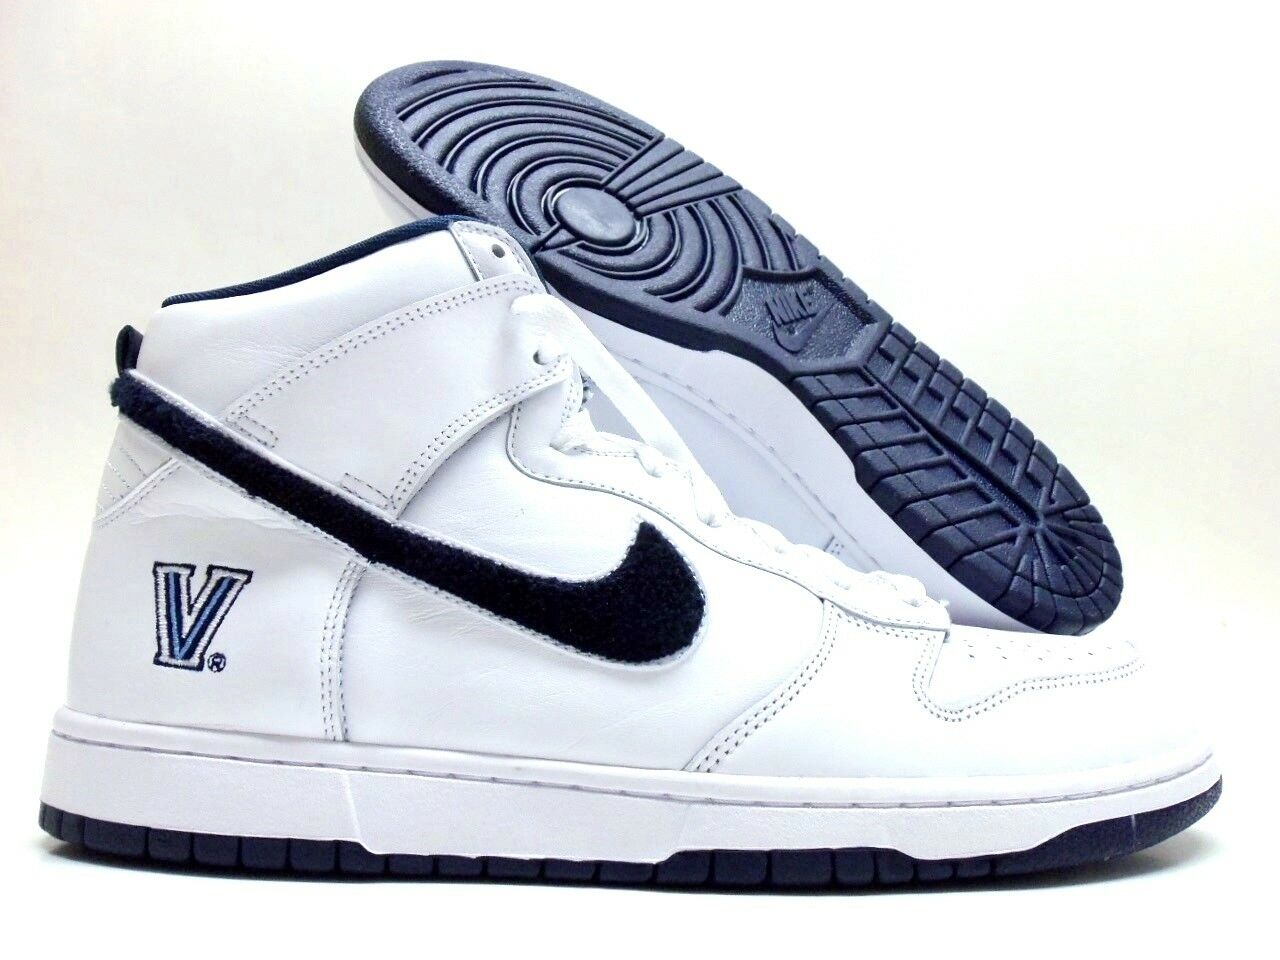 NIKE DUNK HIGH ID WHITE/MIDNIGHT NAVY SIZE MEN'S 11 [AH2110-991]